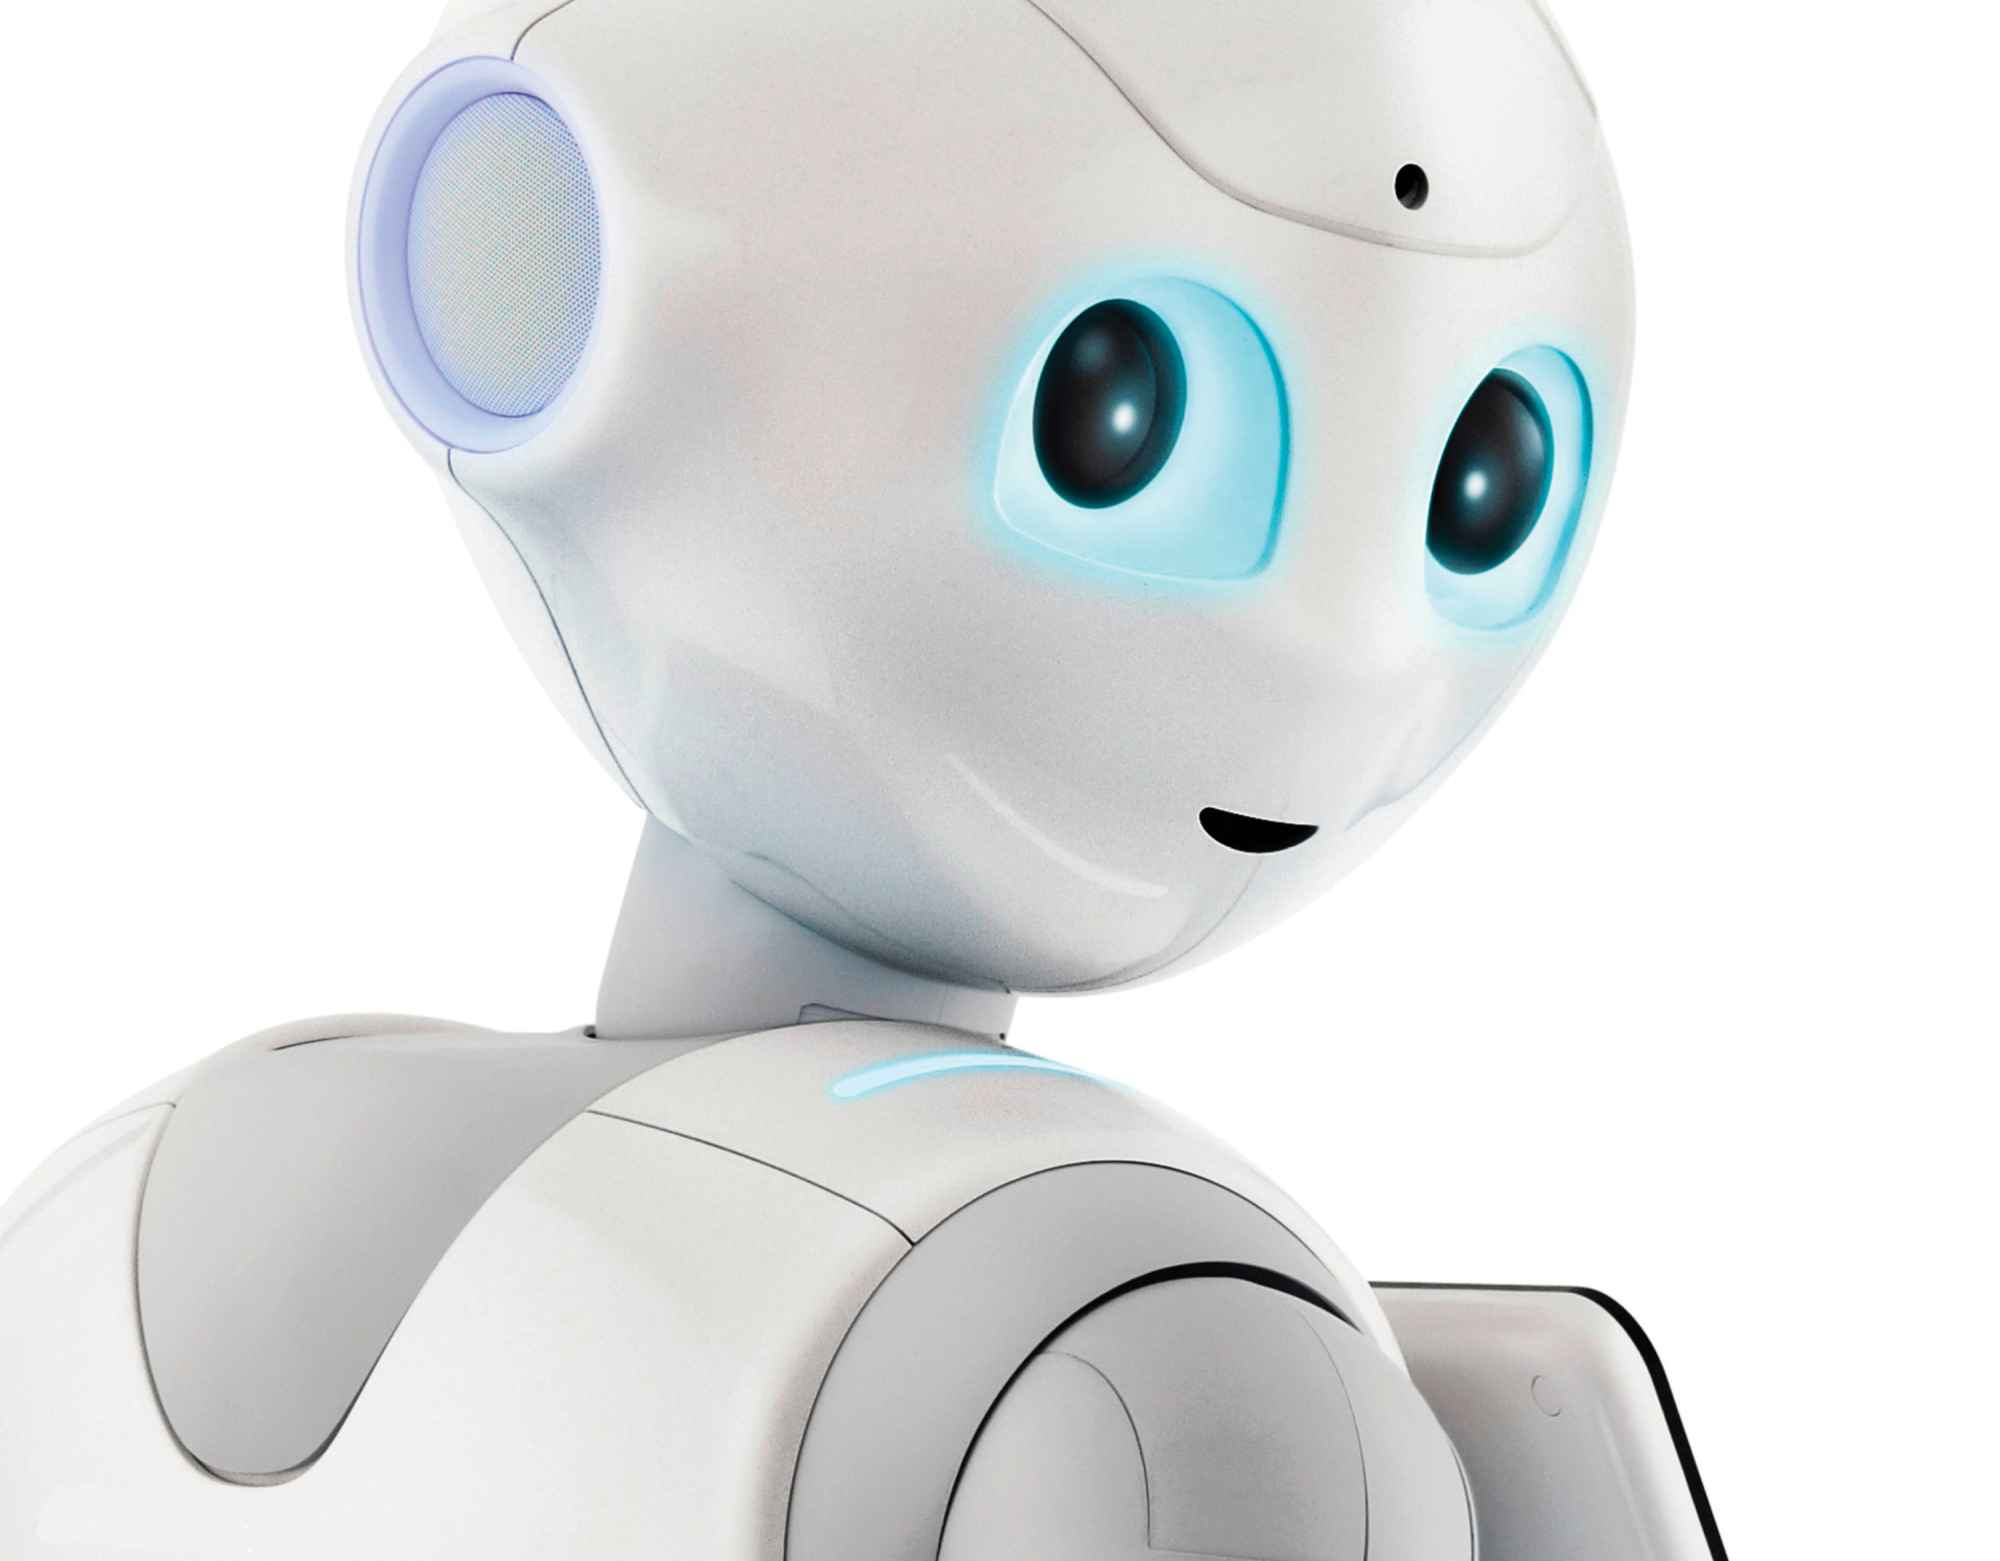 Pepper robot ©SoftBank